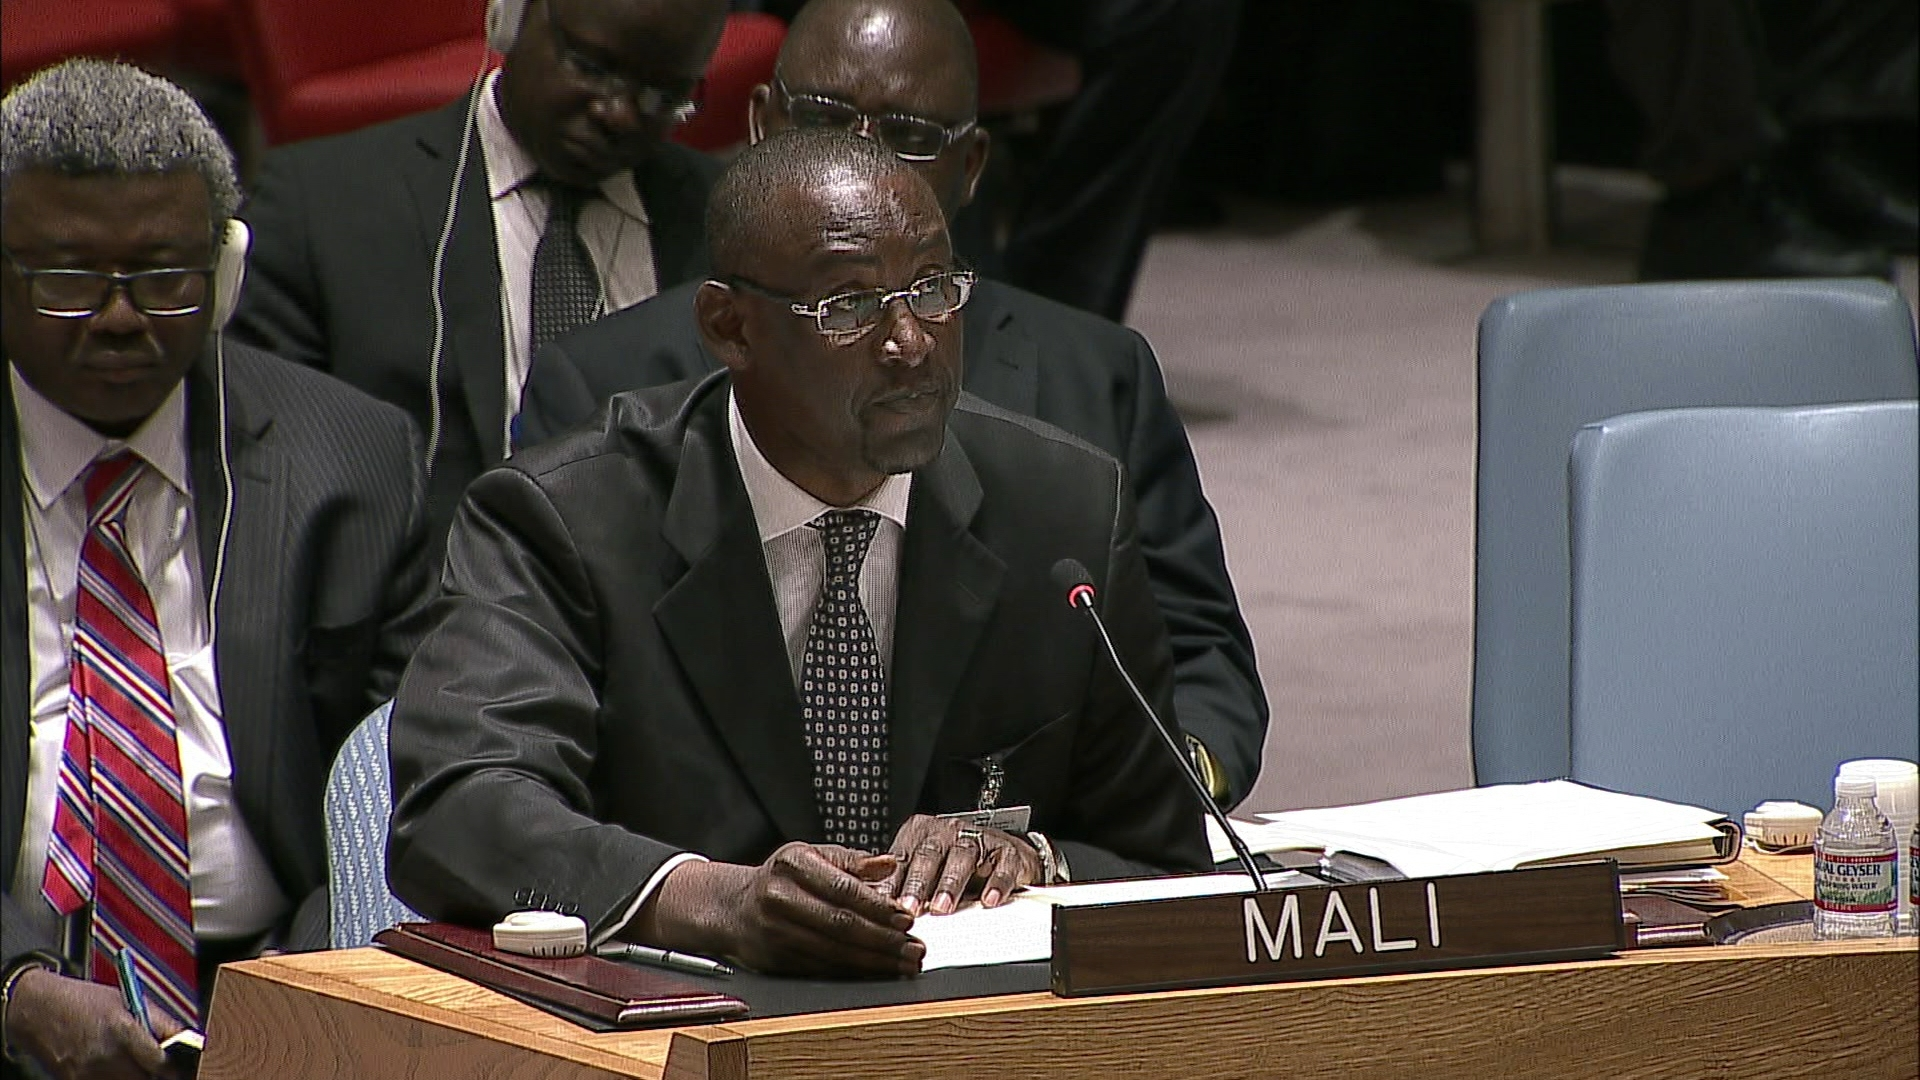 Selected frame from video story UN / MALI